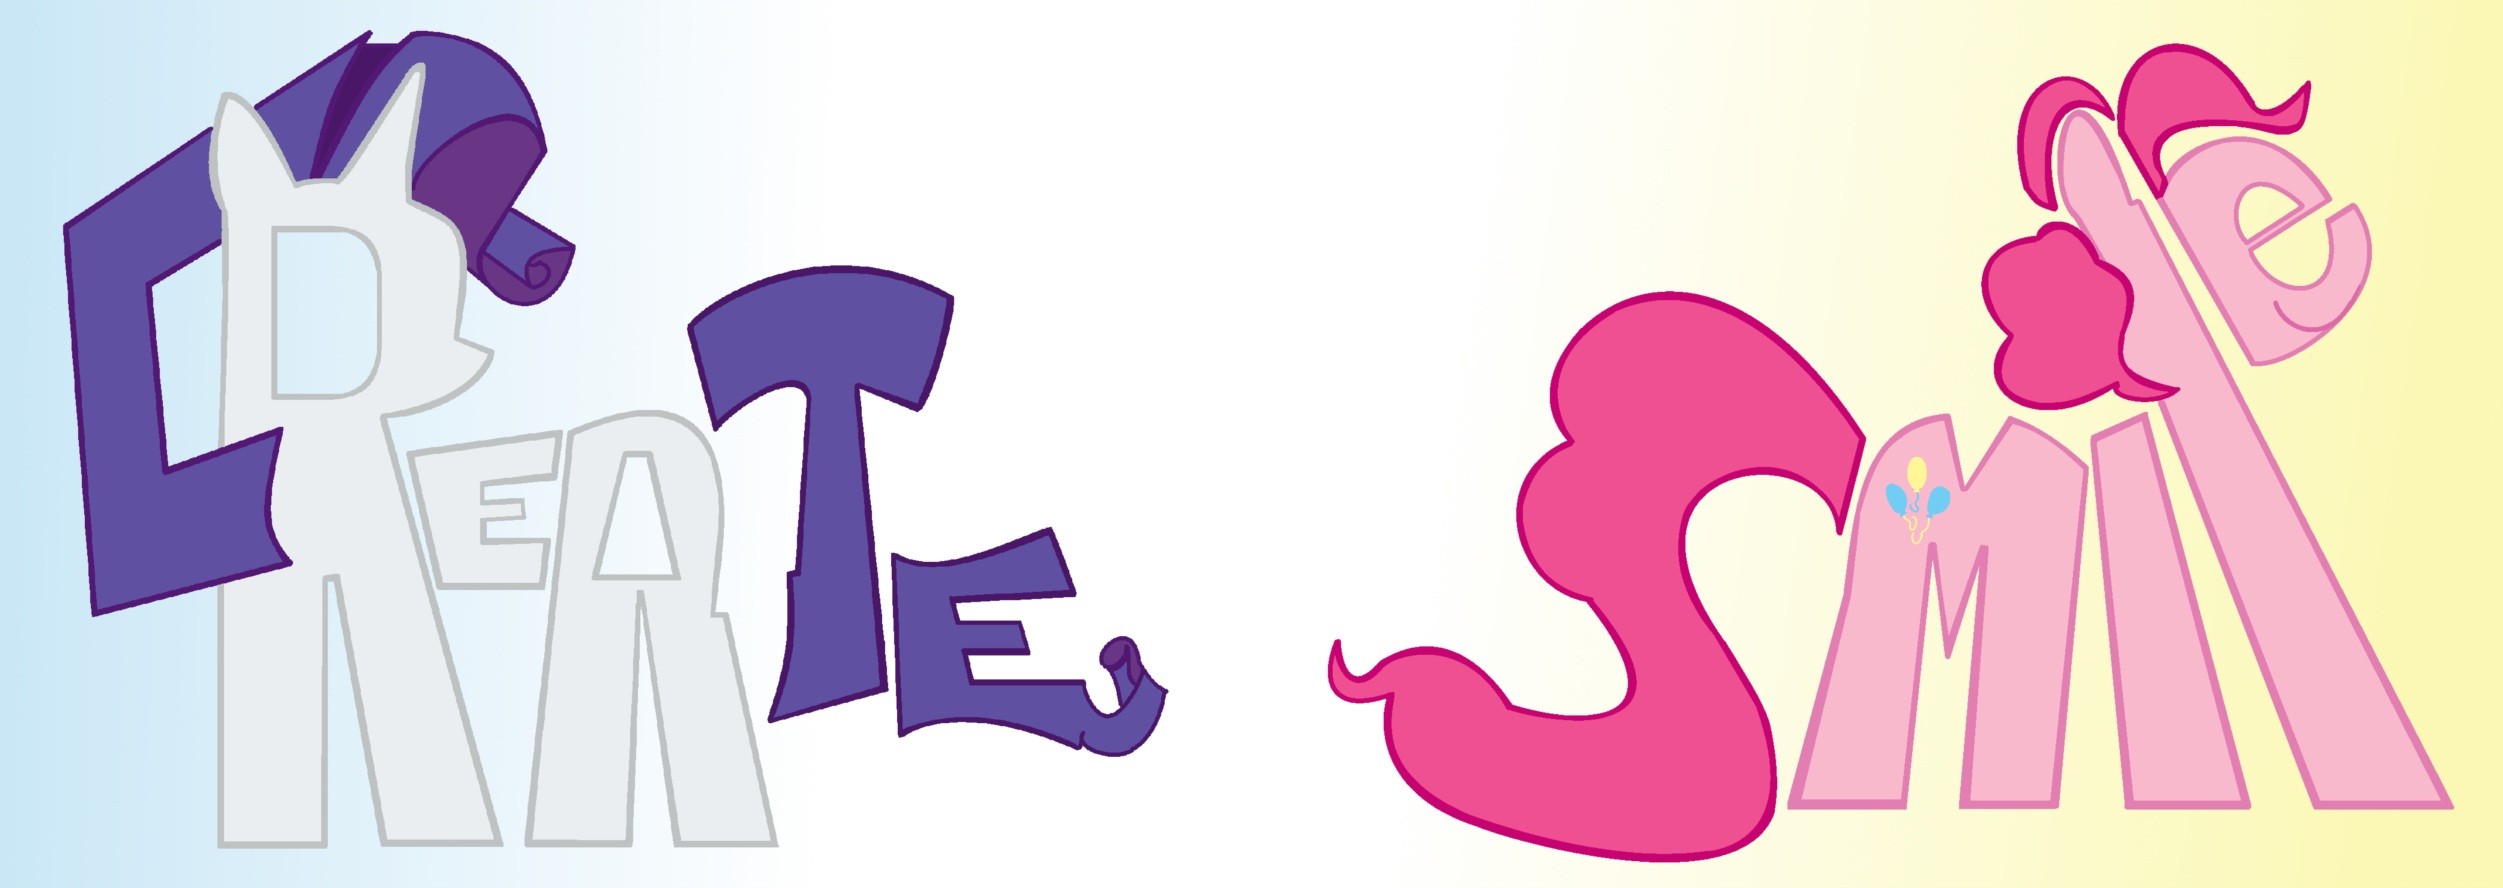 create_rarity_and_smile_pinkie_pie_by_sallycars-d672brl.jpg (2503×888)